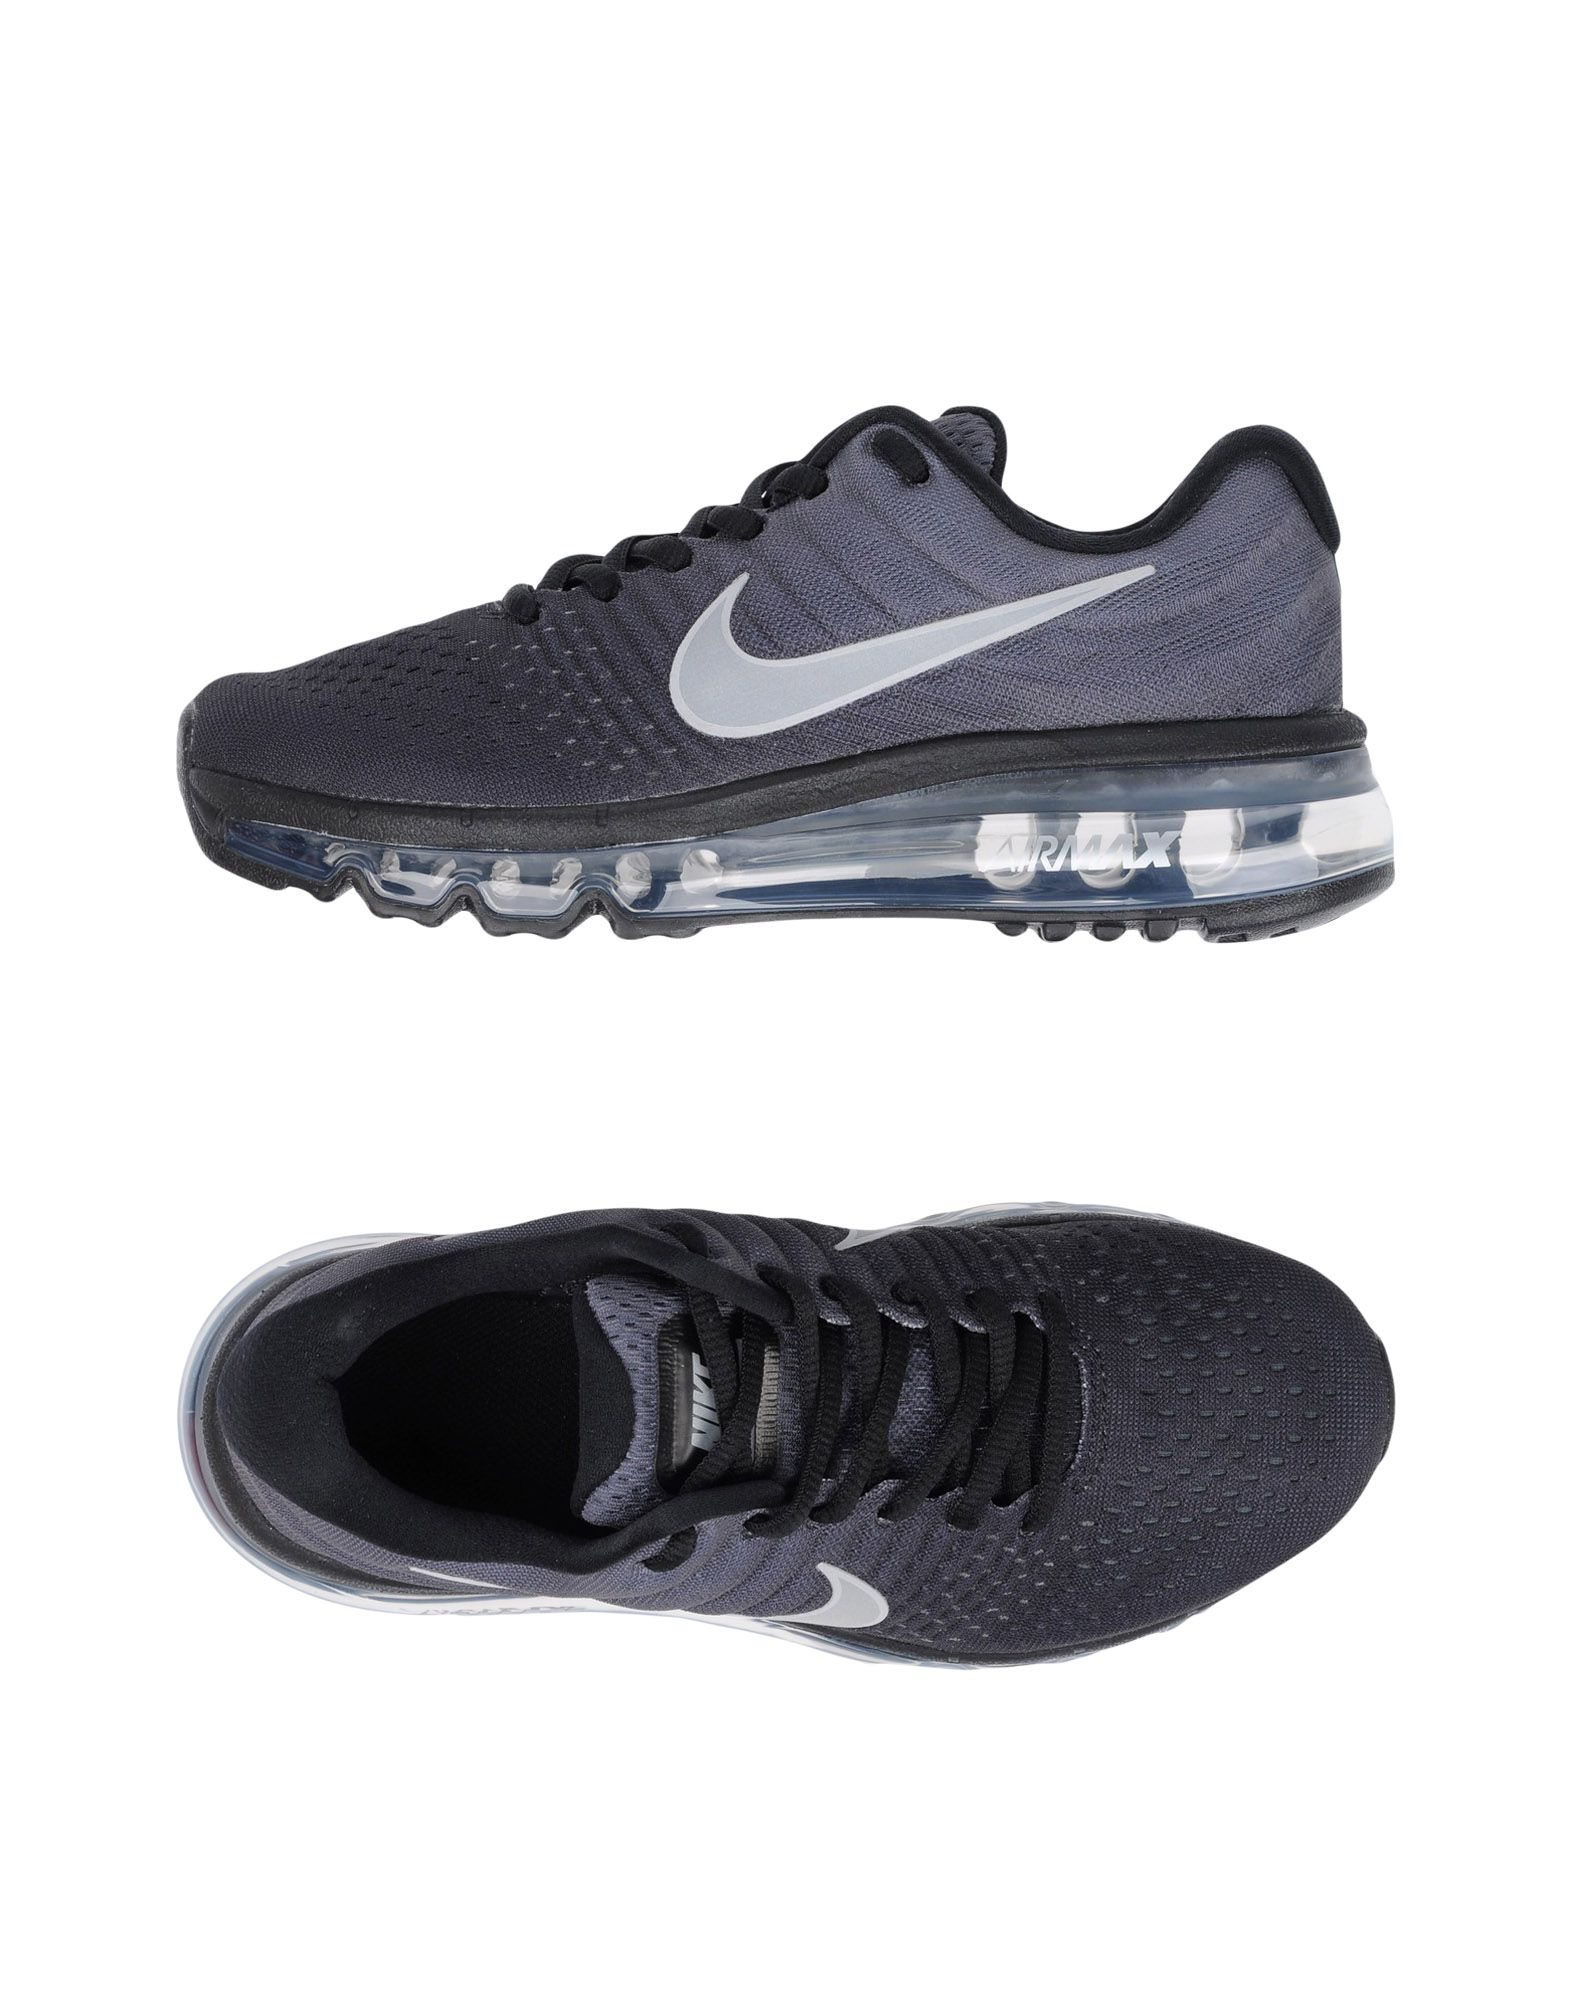 NIKE Низкие кеды и кроссовки original new arrival nike roshe one hyp br men s running shoes low top sneakers